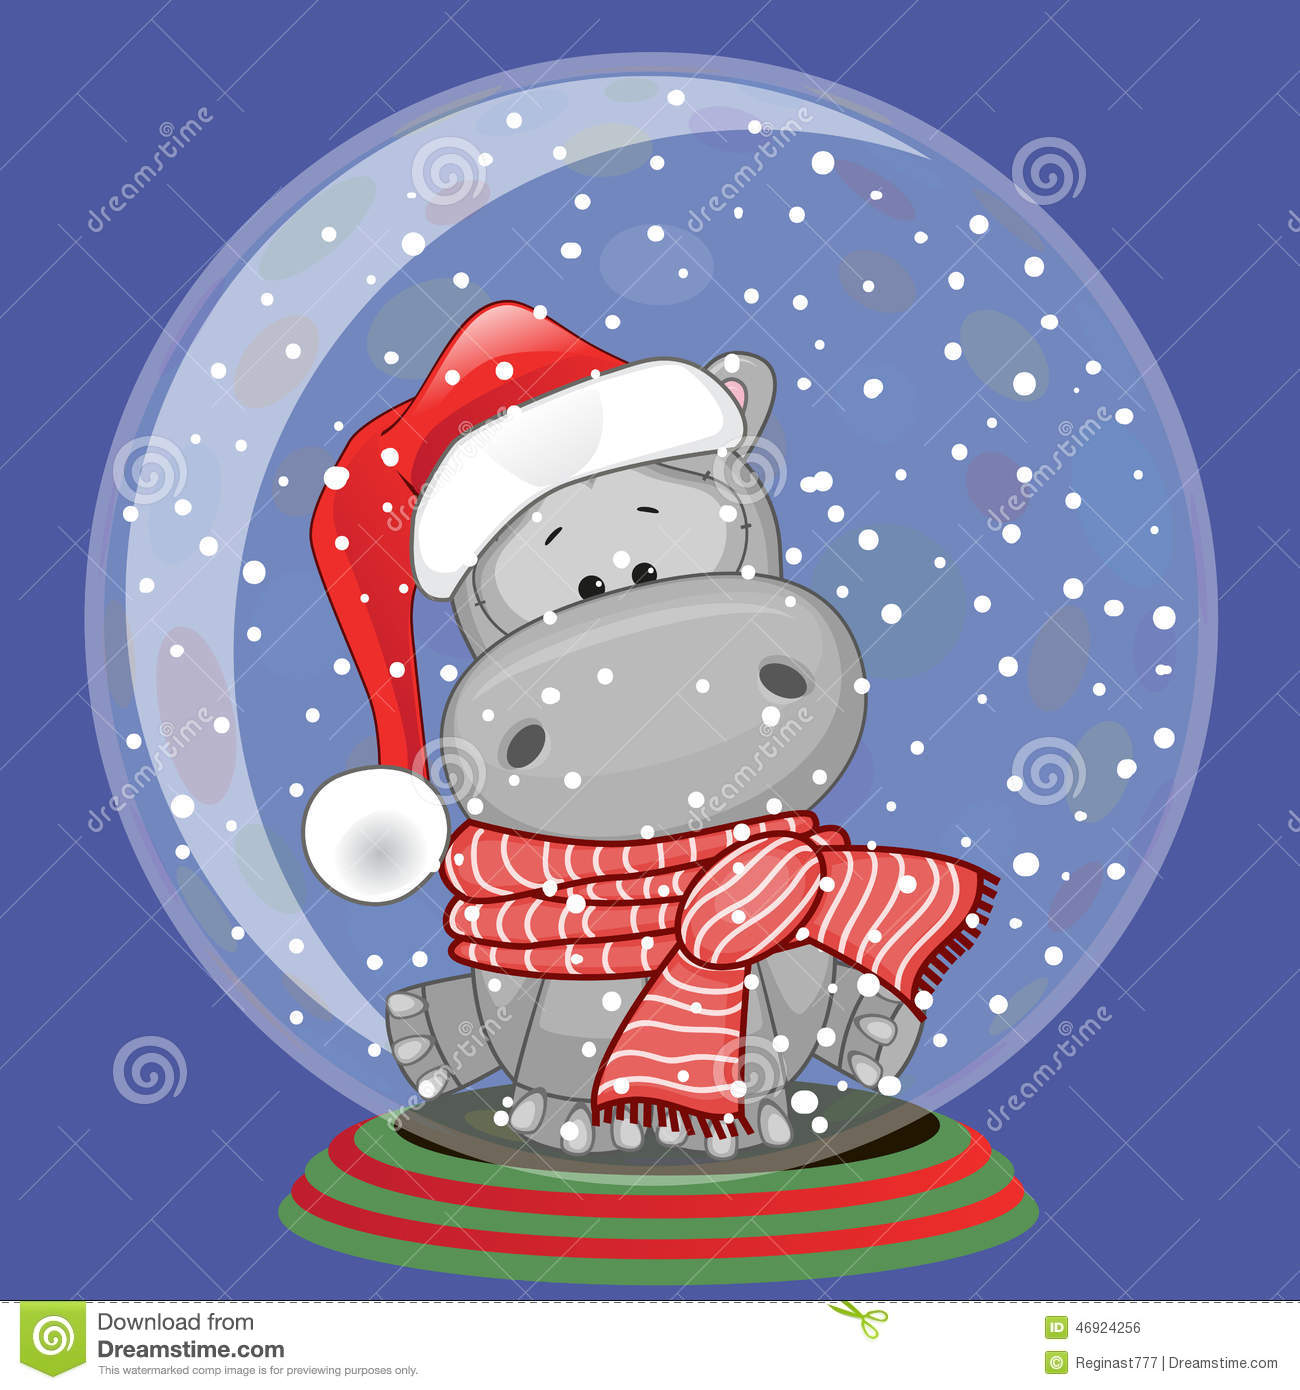 Image result for royalty free images christmas hippo